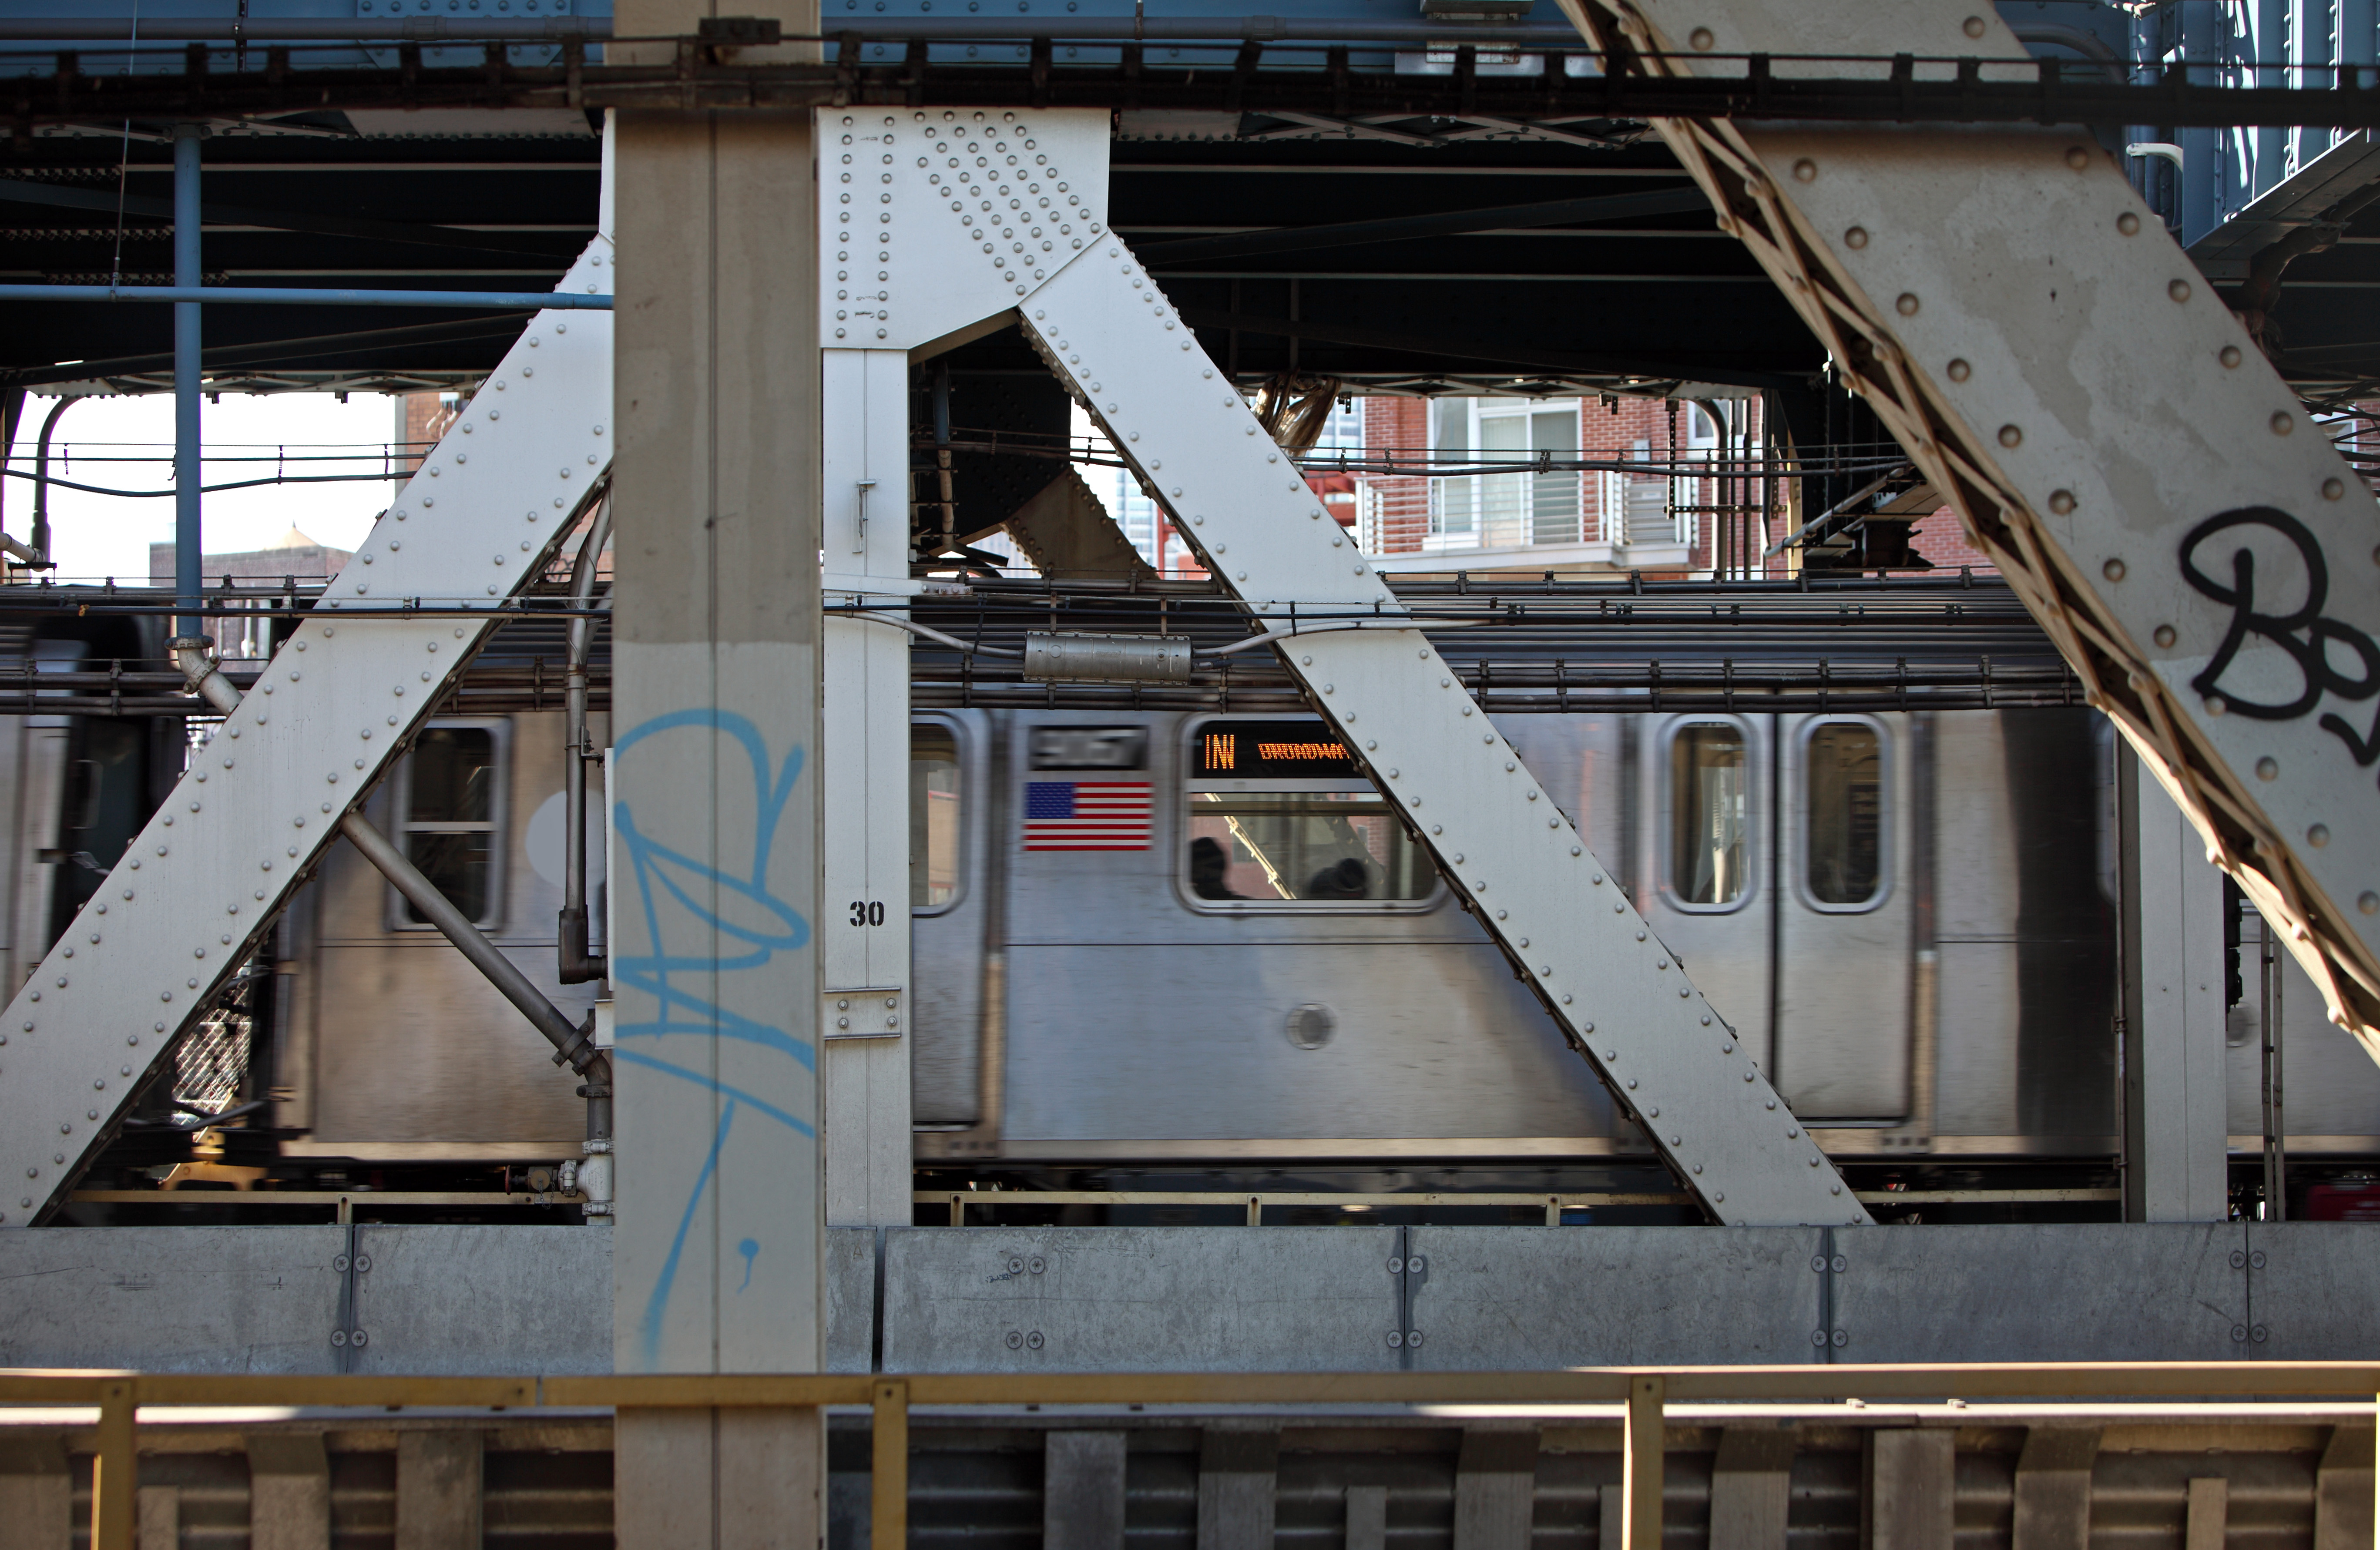 Most subway cars pass over the Manhattan Bridge, as pictured here, without cricket incidents.